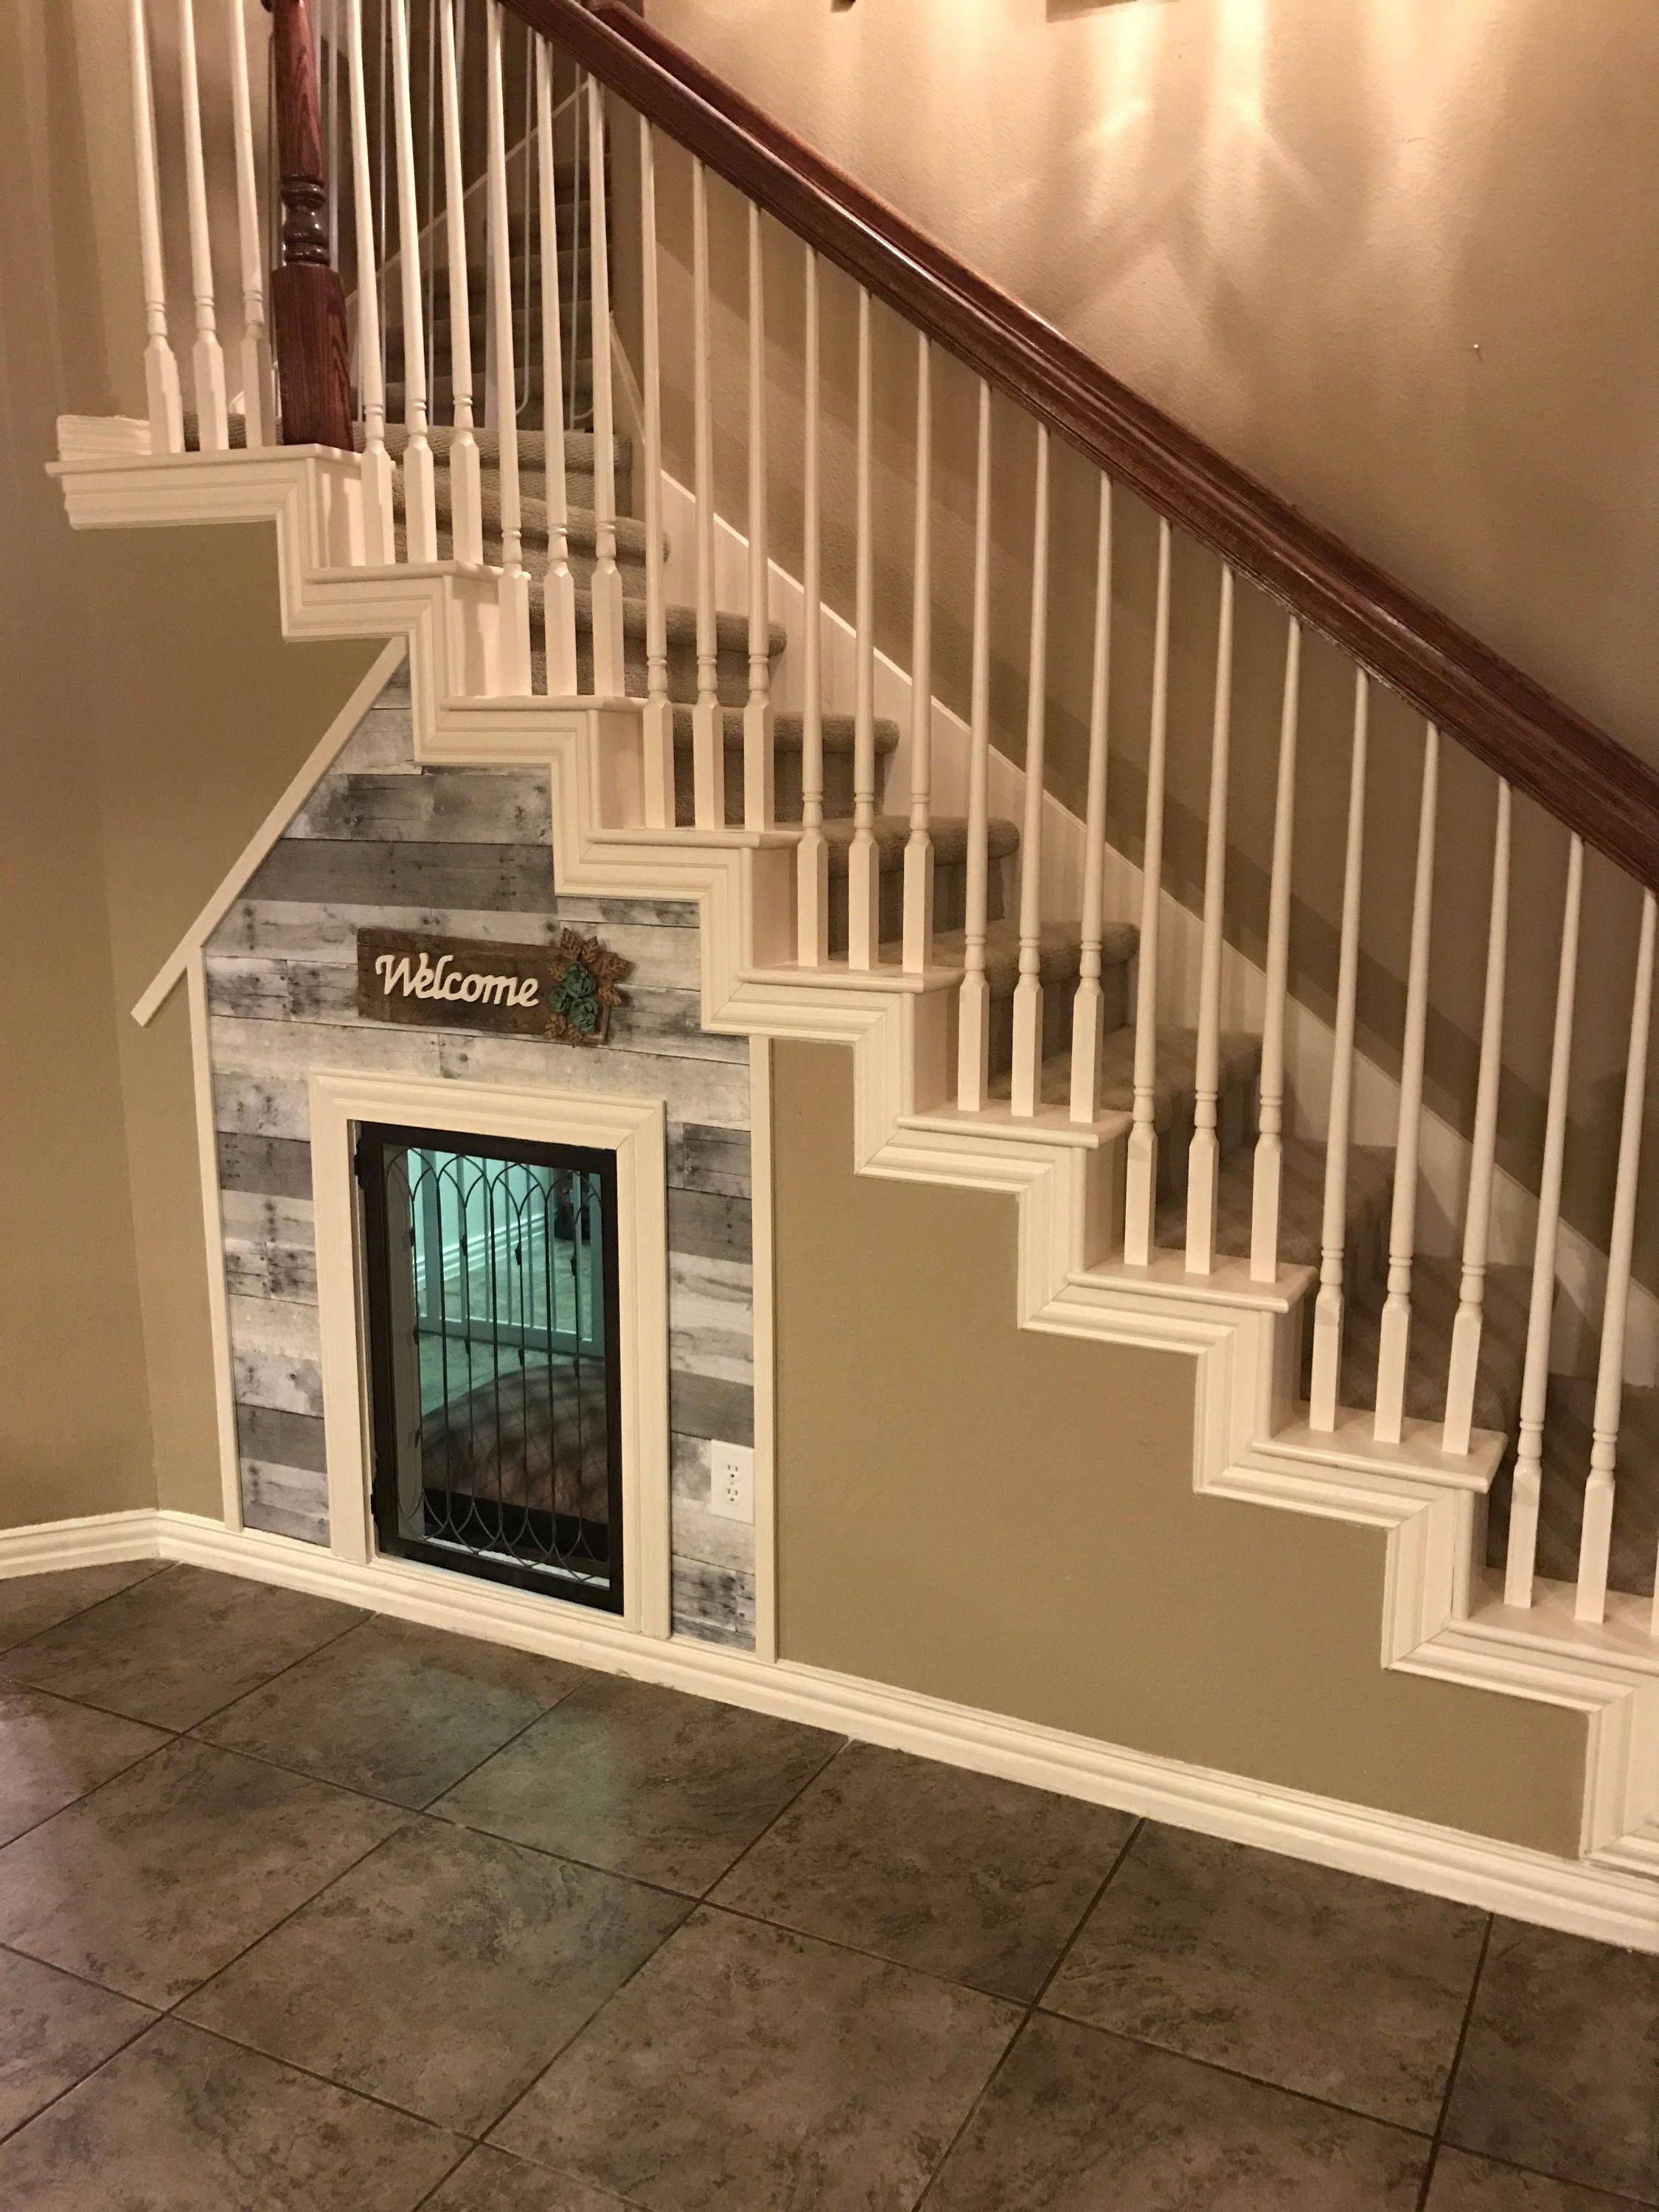 Dog Room Stairs Dogroomstairs Under Stairs Dog House Dog House